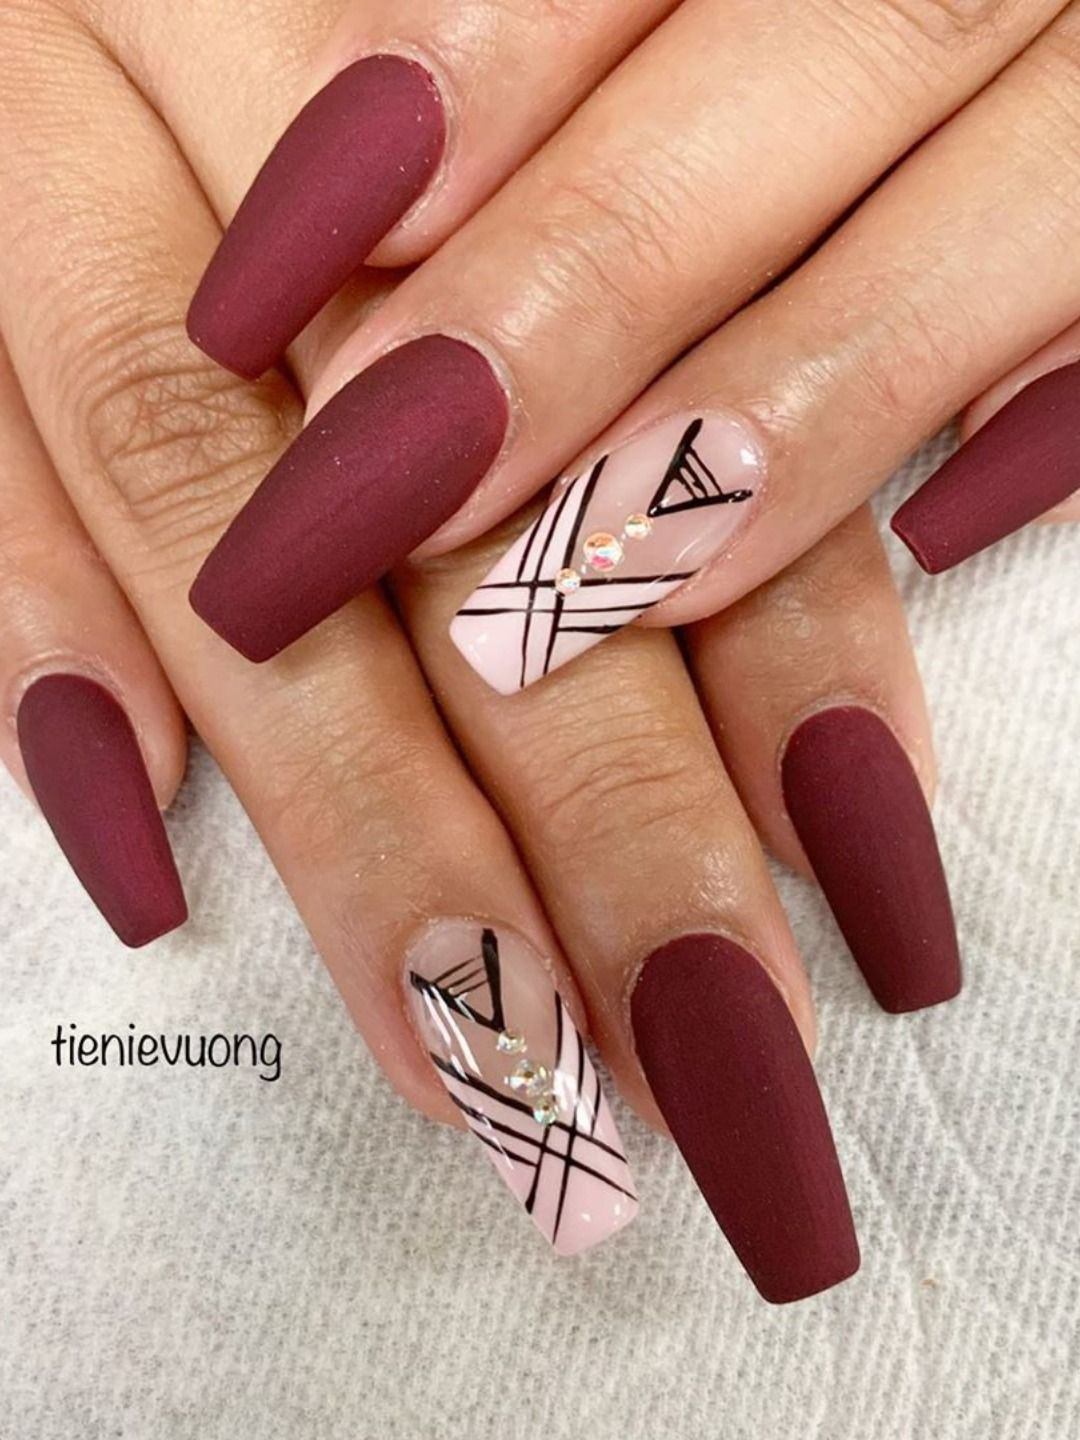 The Best Nail Trends For Cute Fall Manicure Stylish Belles Maroon Acrylic Nails Fall Nail Designs Nail Designs